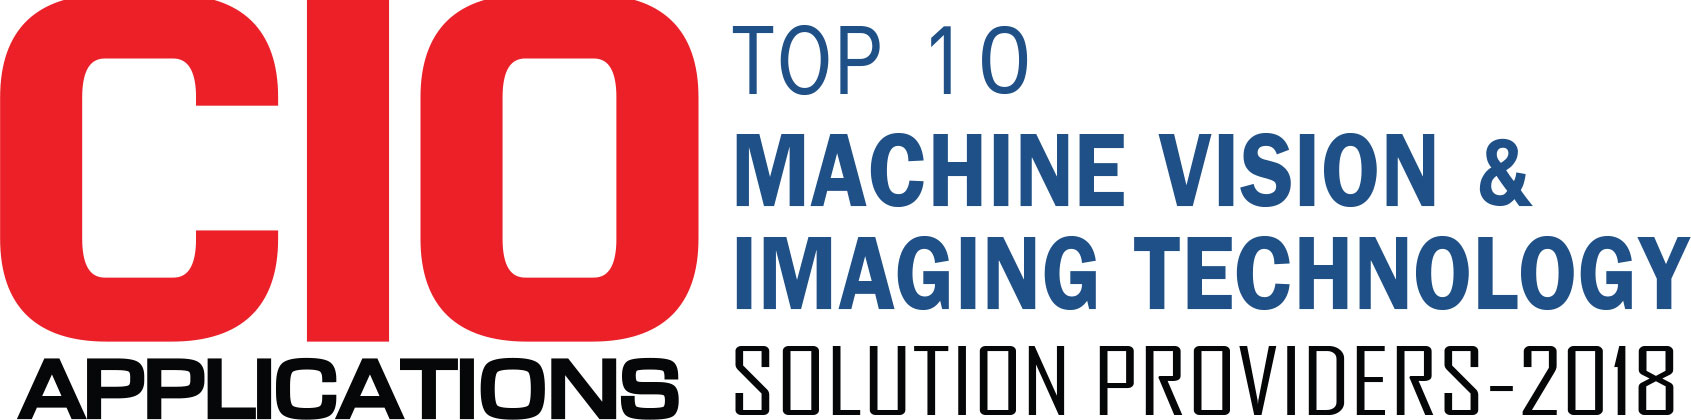 Top Companies Providing Machine Vision and Imaging Technology Solution